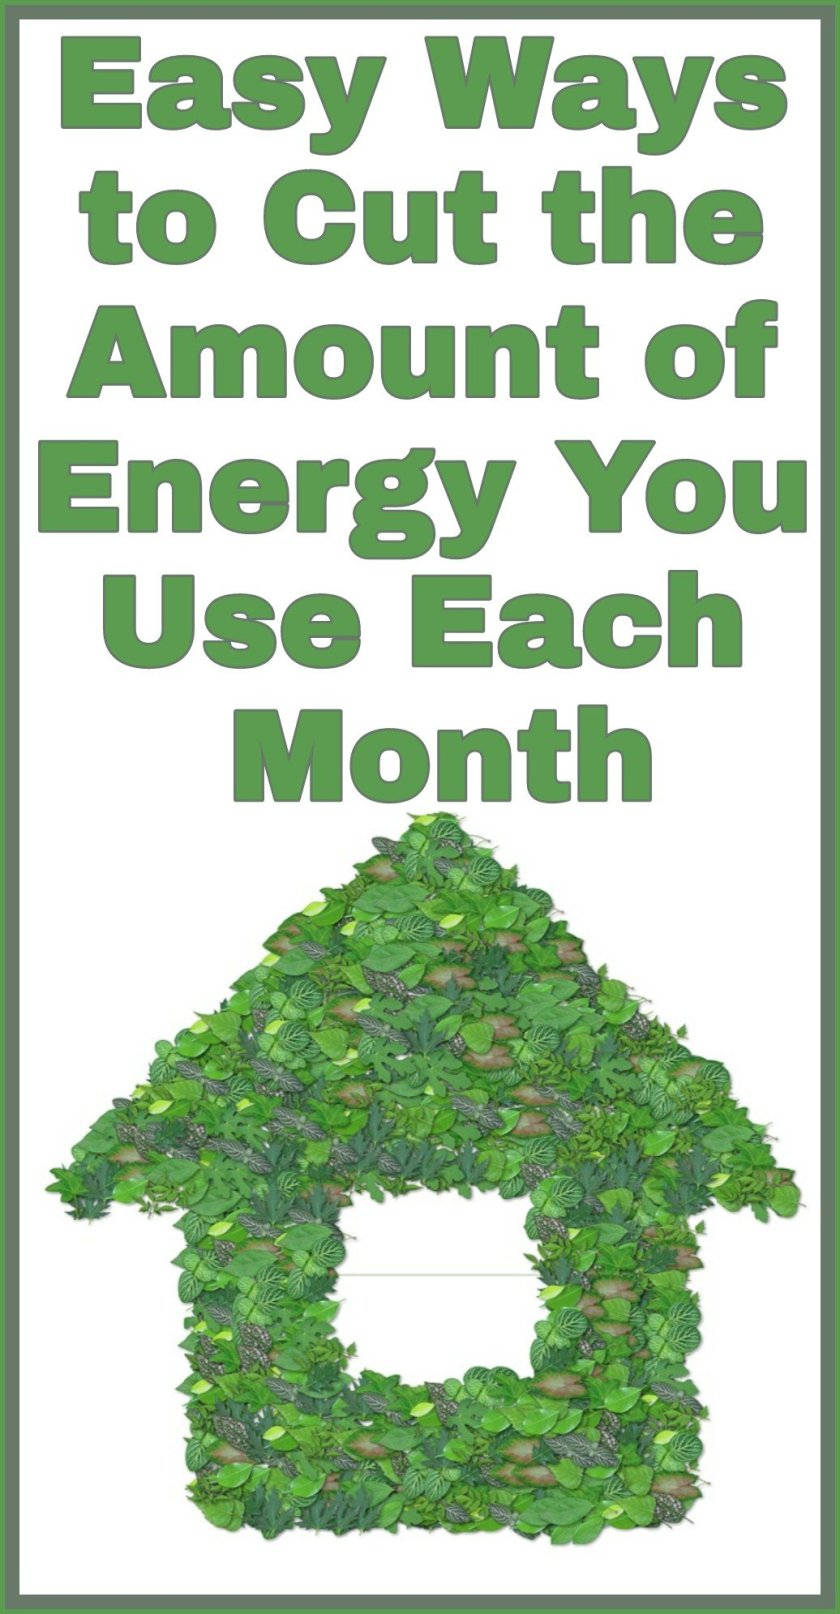 Easy Ways to Cut the Amount of Energy You Use Each Month title with image of house made of leaves